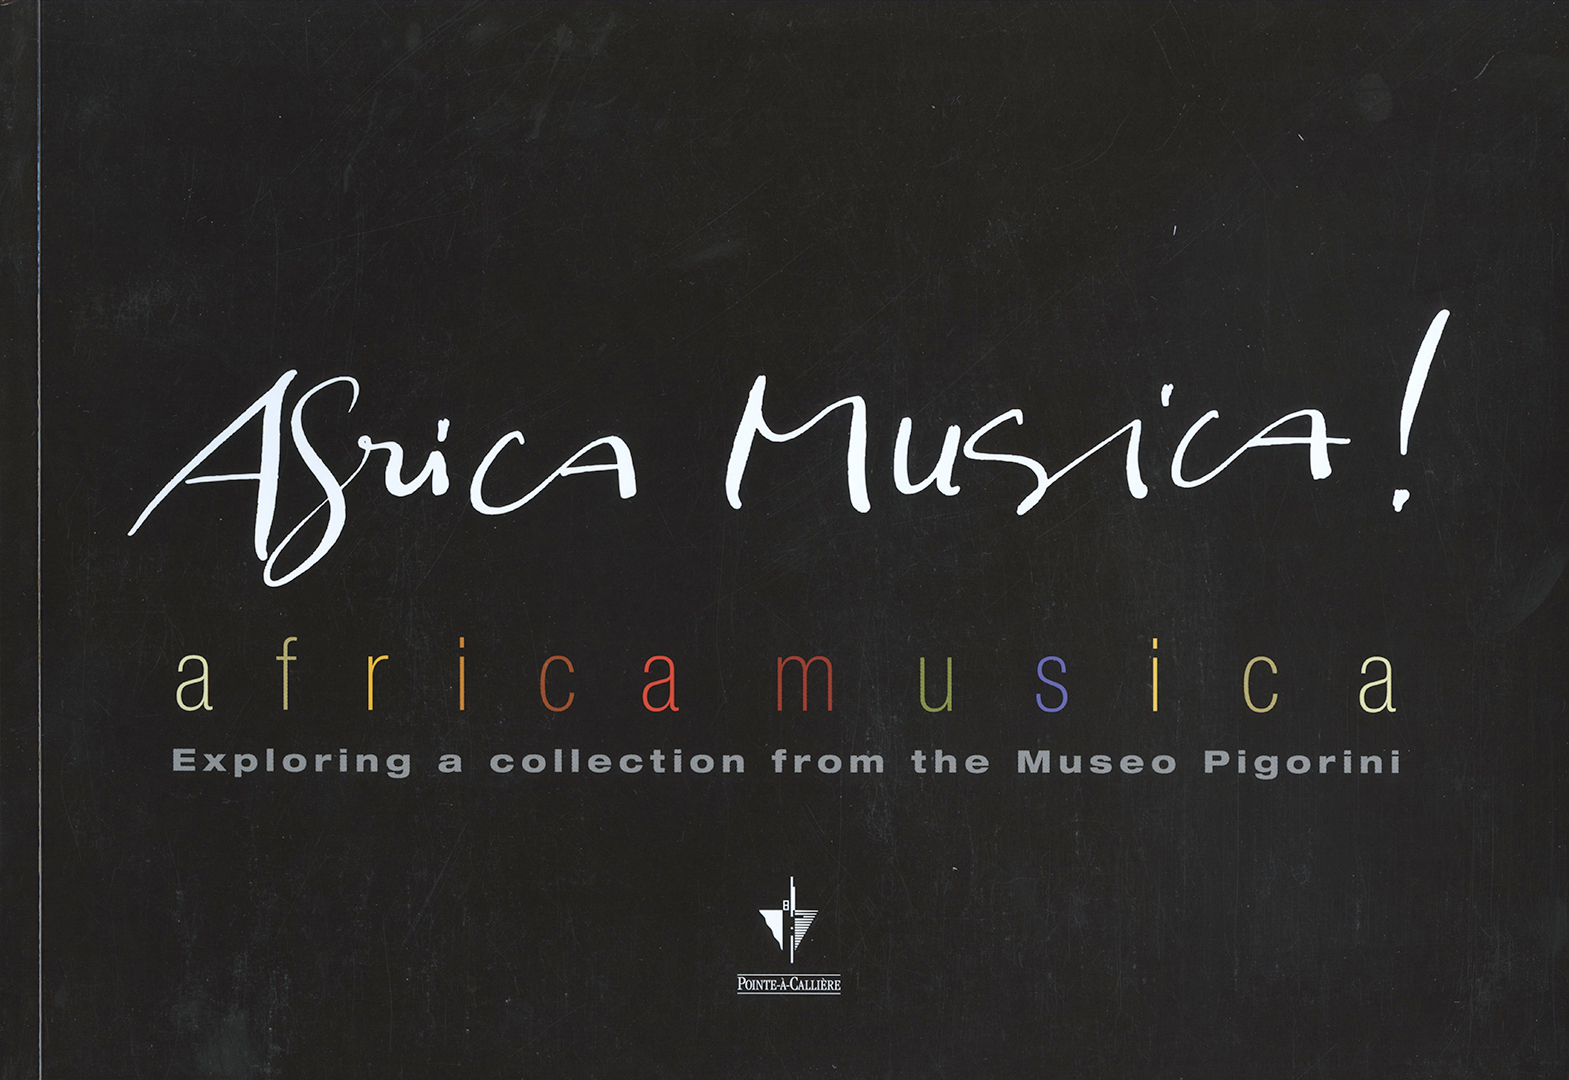 Africa Musica! Exploring a collection from the Museo Pigorini